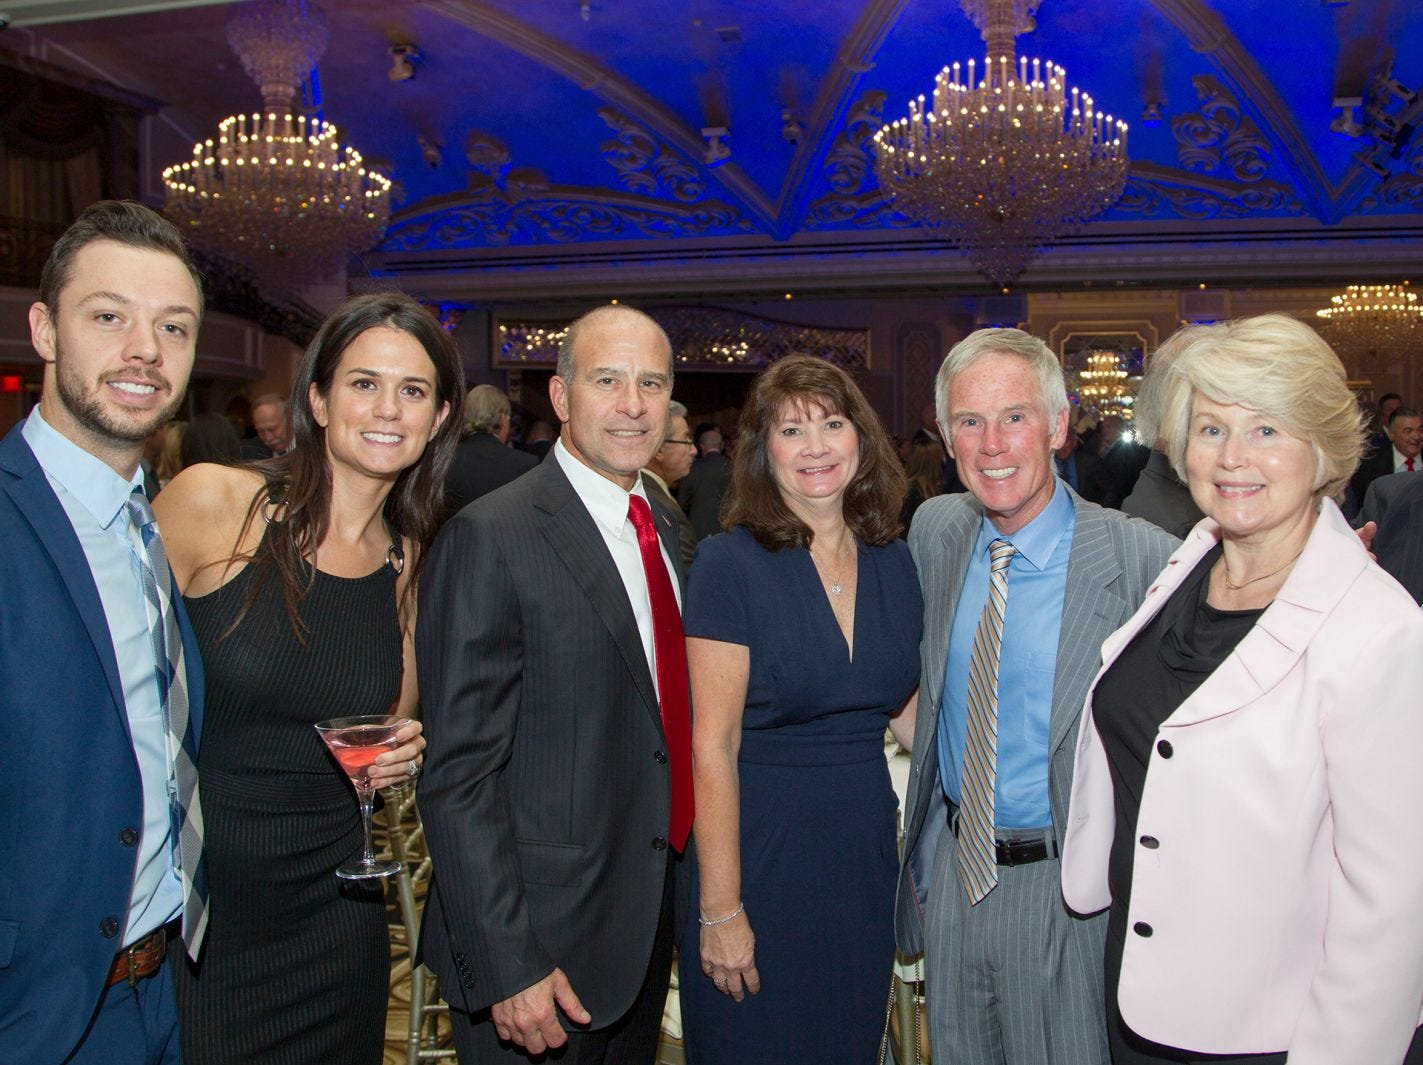 Tyler and Meridith Crawford, Joe and Tina Coccaro, Brian and Janet McCourt. Holy Name Medical Center held its 2018 MS Center Awards Reception at the Venetian in Garfield. 10/23/2018